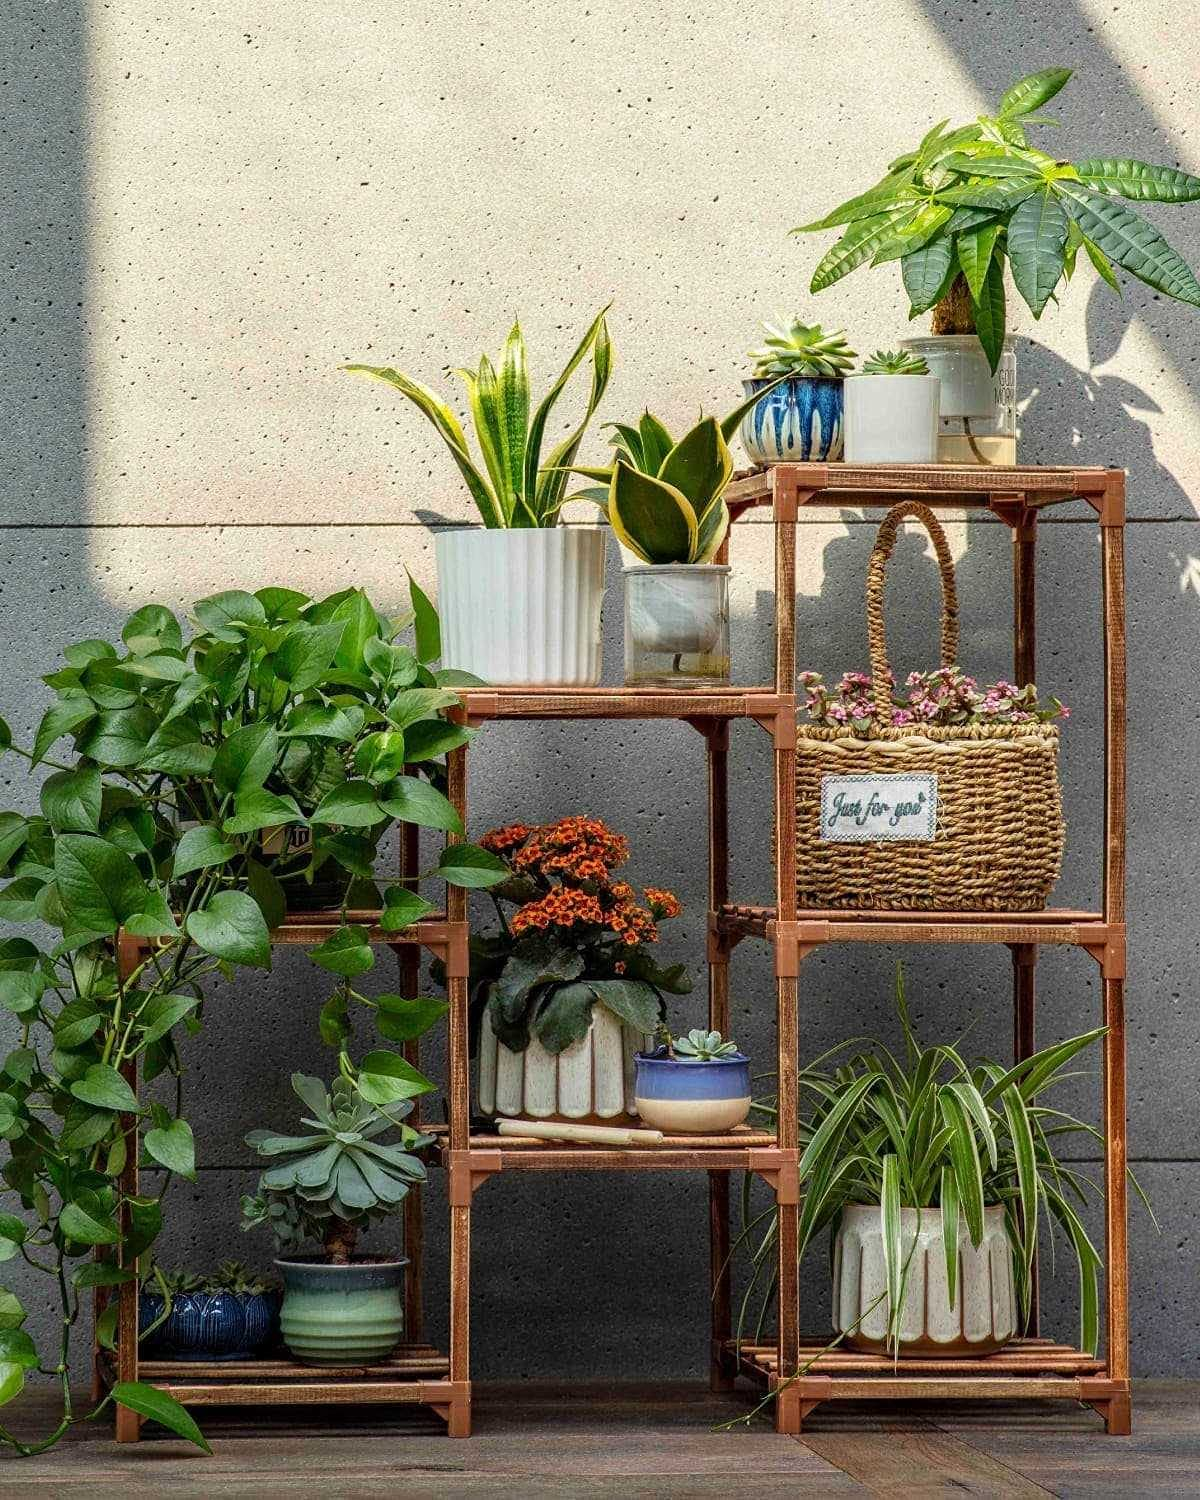 Plant Stands for Indoor Plants, Wood Outdoor Tiered Plant Shelf for Multiple Plants, 3 Tire 7 Potted Ladder Plant Holder Table Plant Pot Stand for Window Garden Balcony Patio Corner Living Room